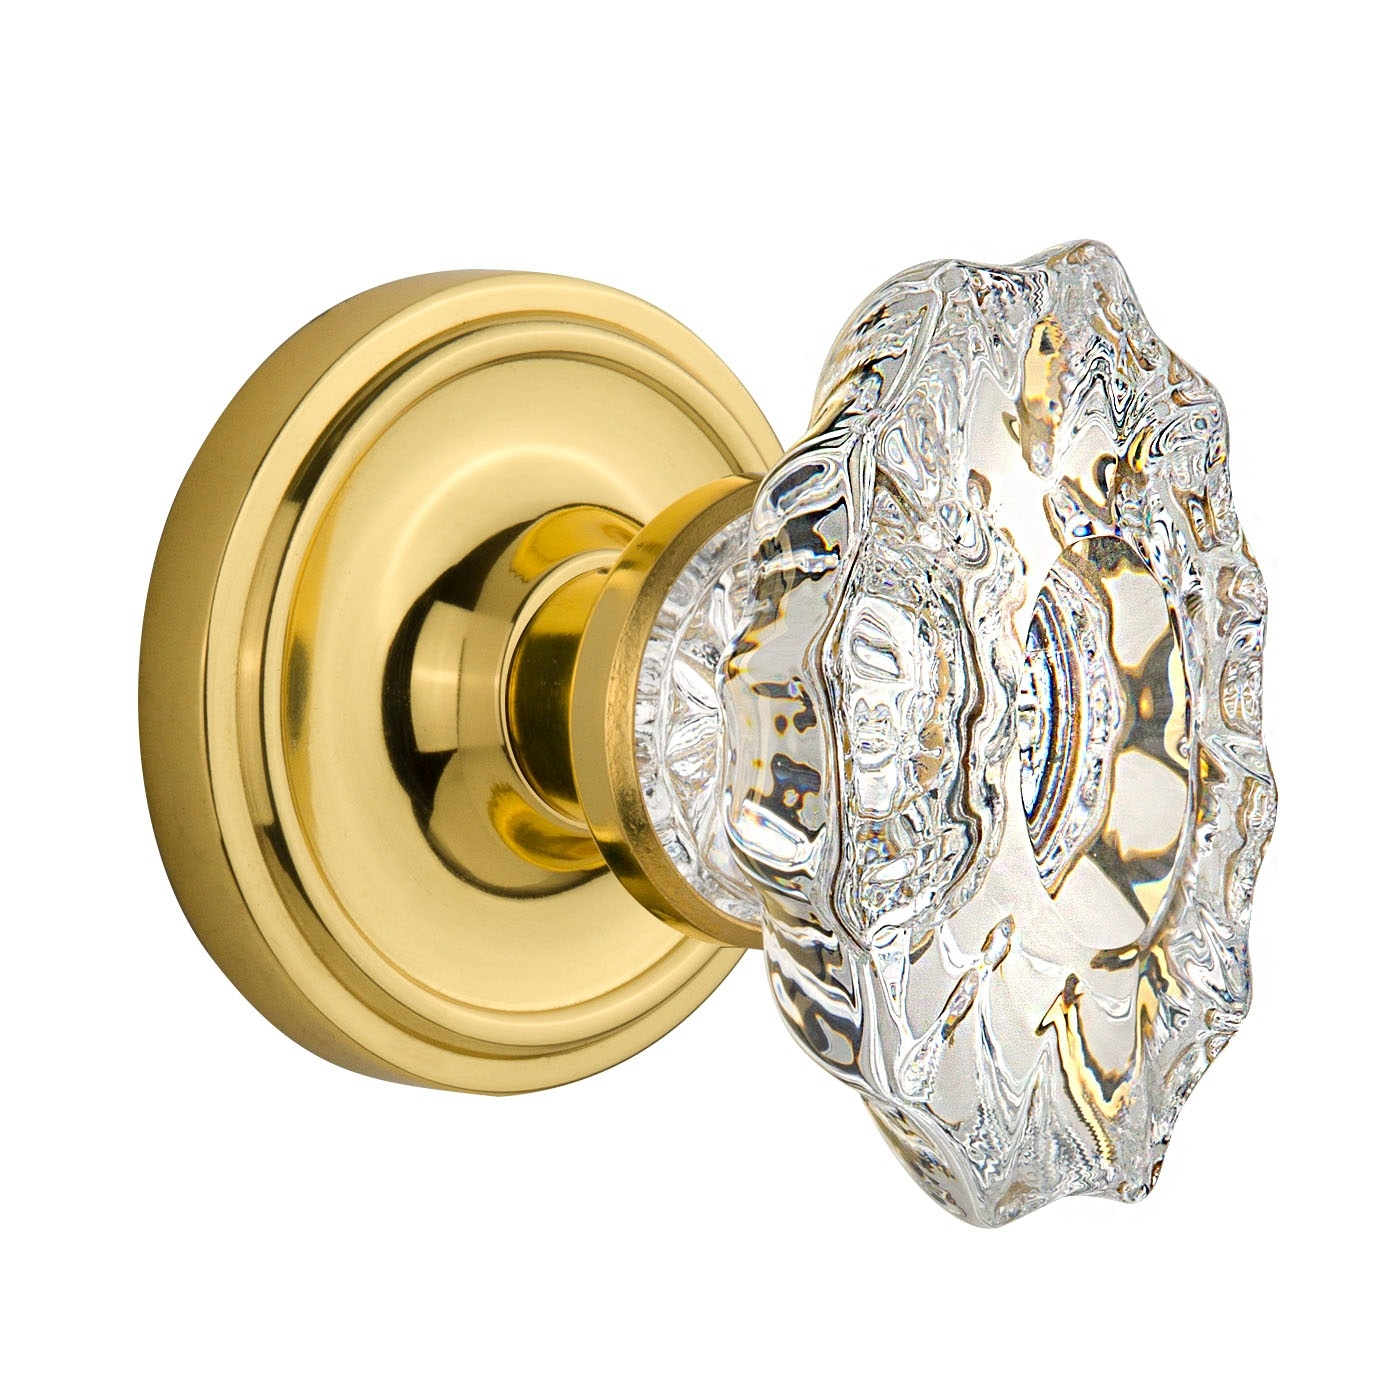 Nostalgic Warehouse Chateau Crystal Knob Privacy Mortise with Classic Rose PB